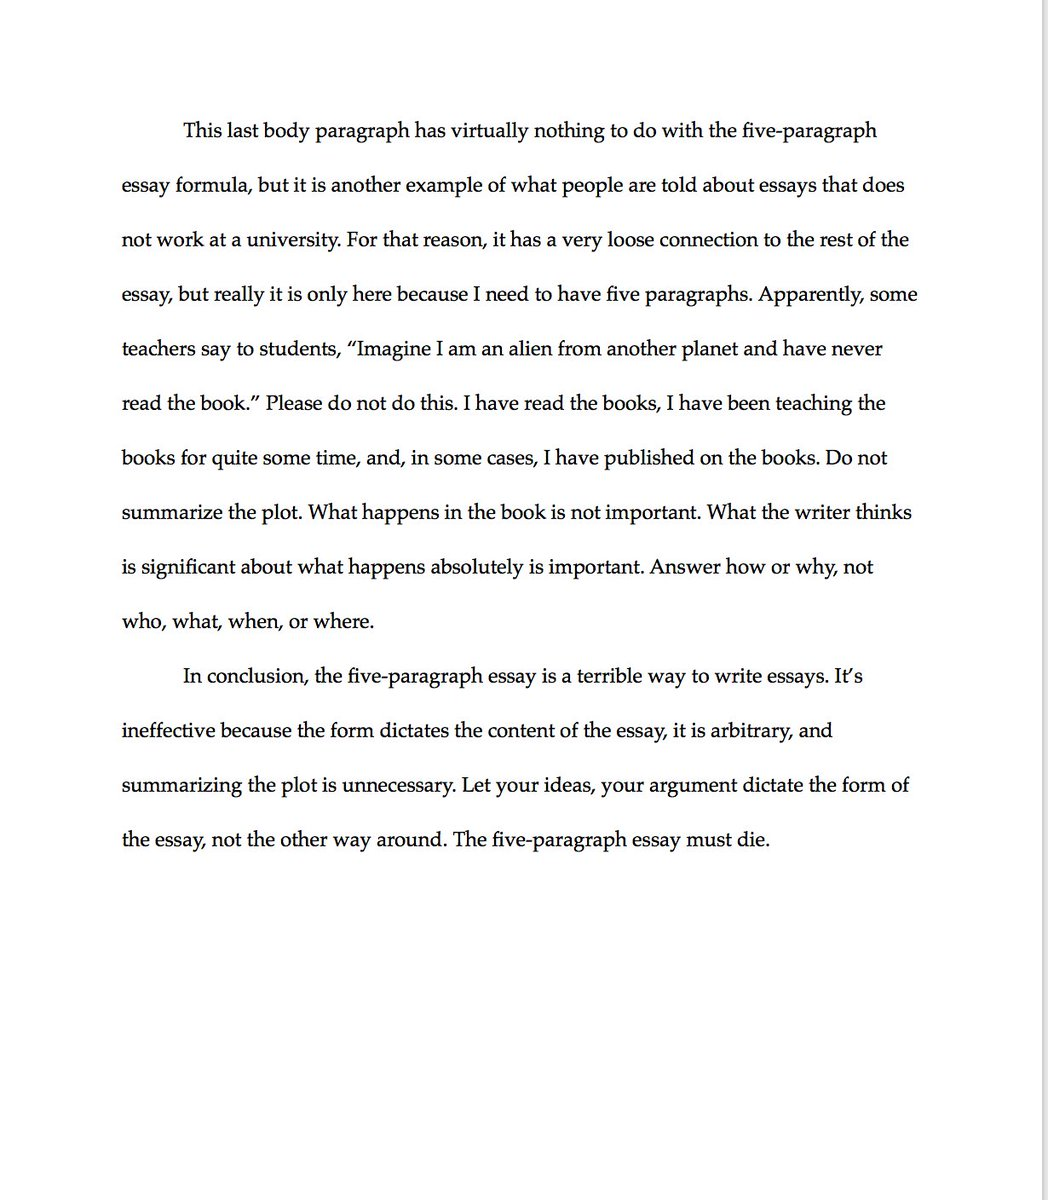 003 C3xarcyvuaaqu02 Essay Example How Many Paragraphs Does An Exceptional Have A Narrative Short Can Full